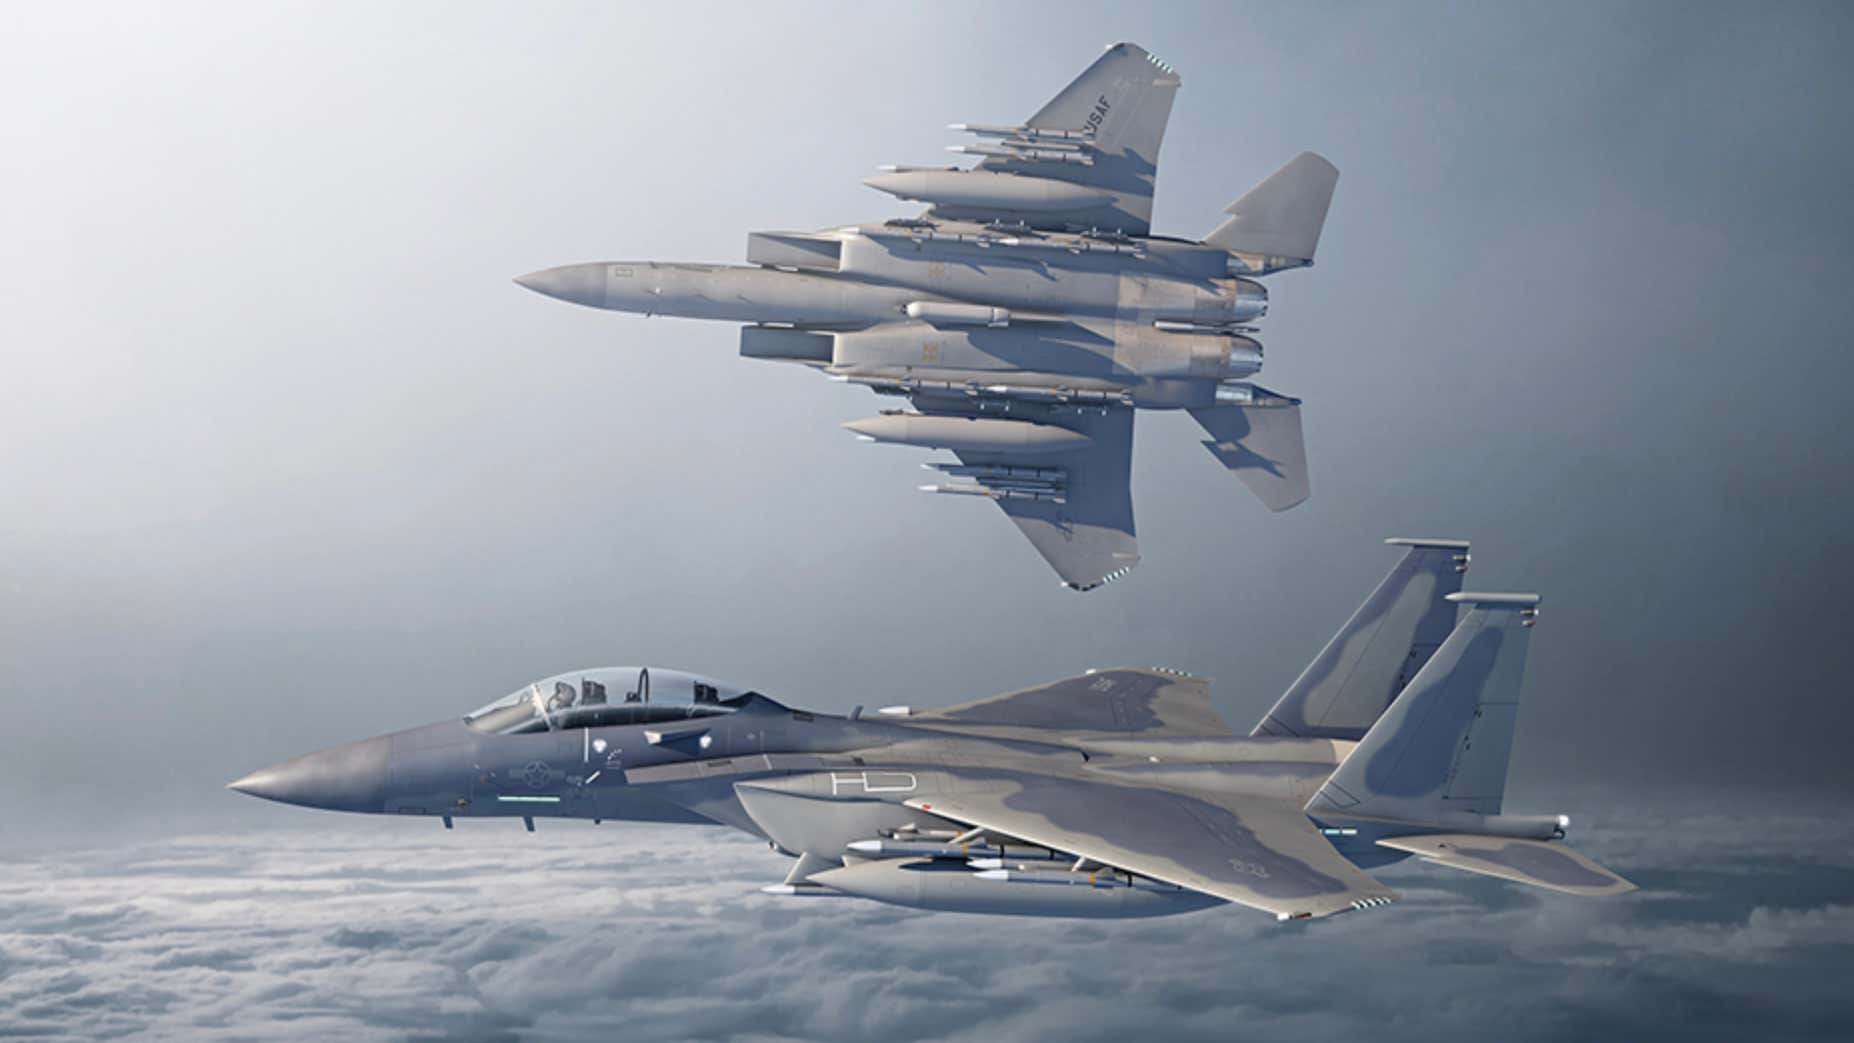 Boeing concept art showing the F-15EX in U.S. Air Force service.